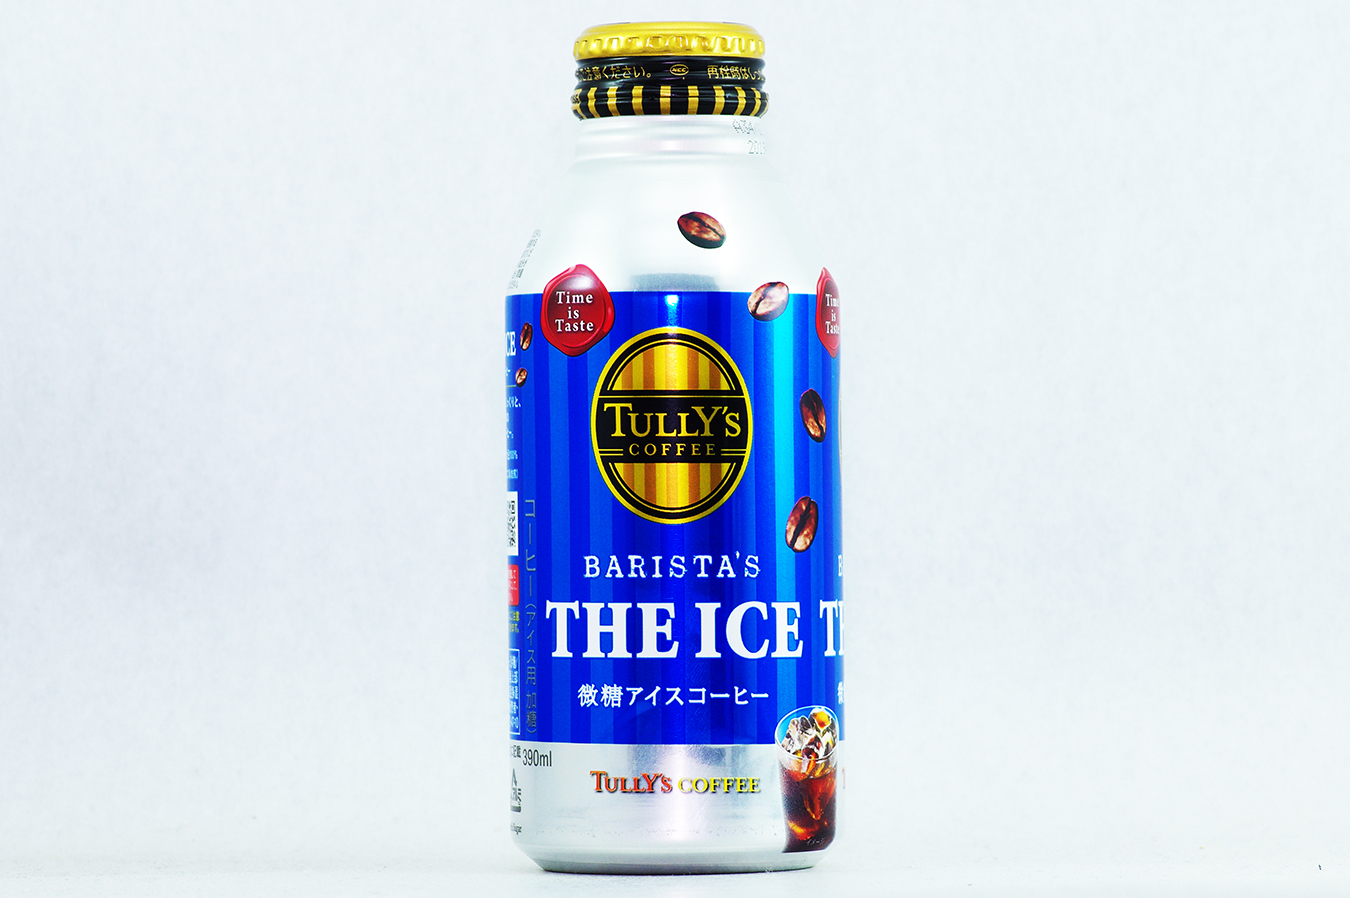 TULLY'S COFFEE BARISTA'S THE ICE 2018年6月